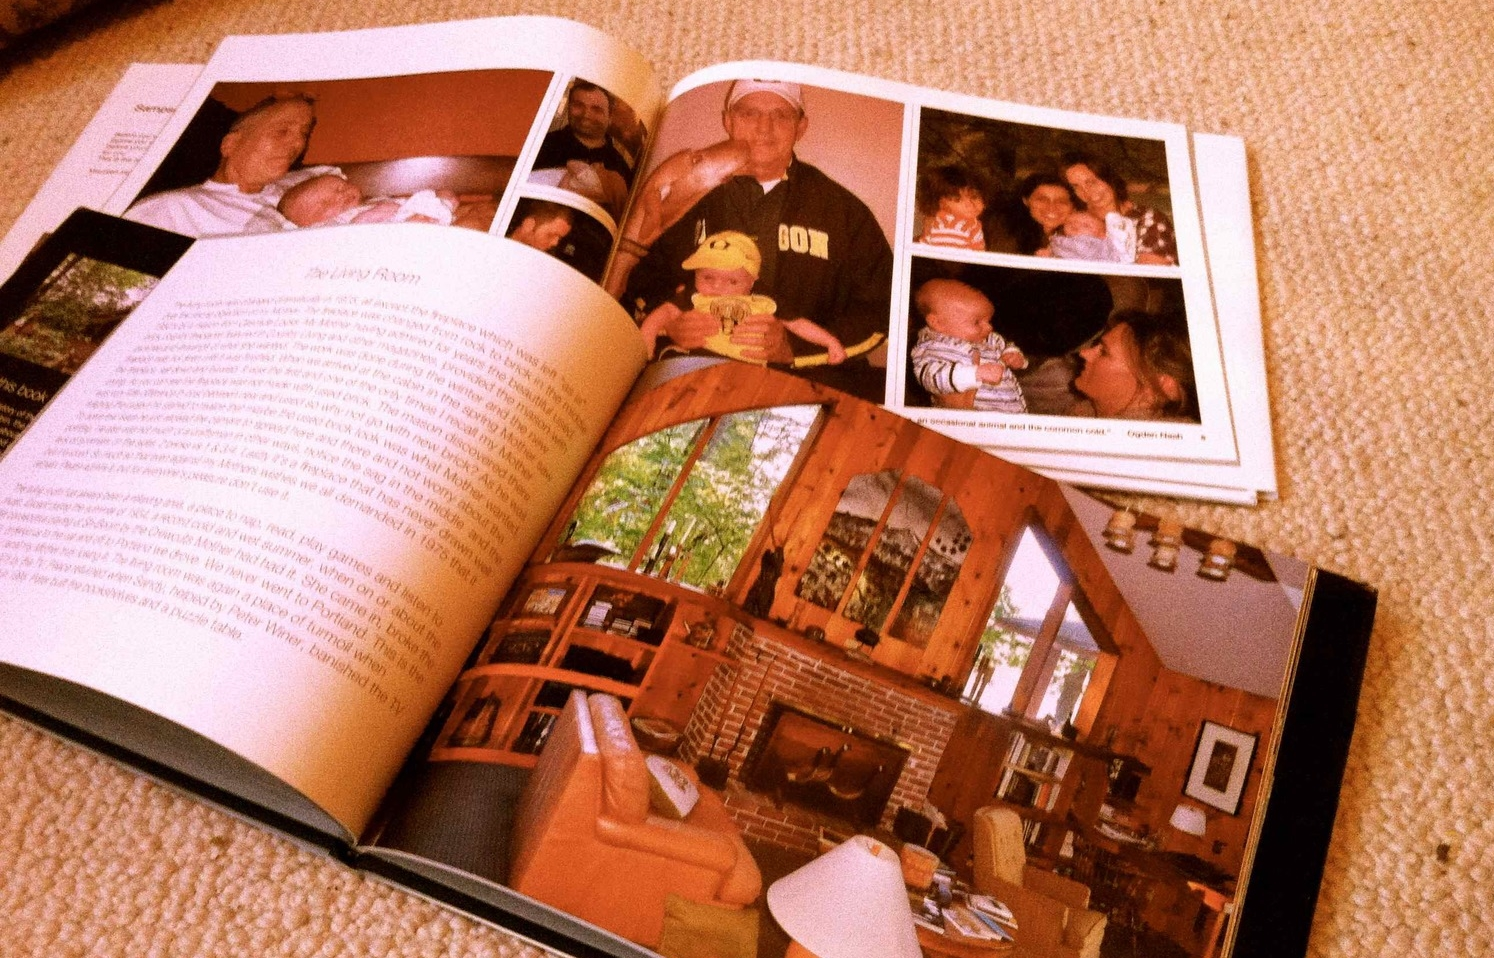 Cherished possessions—photo books made by family members. Thank you for helping me document my life!